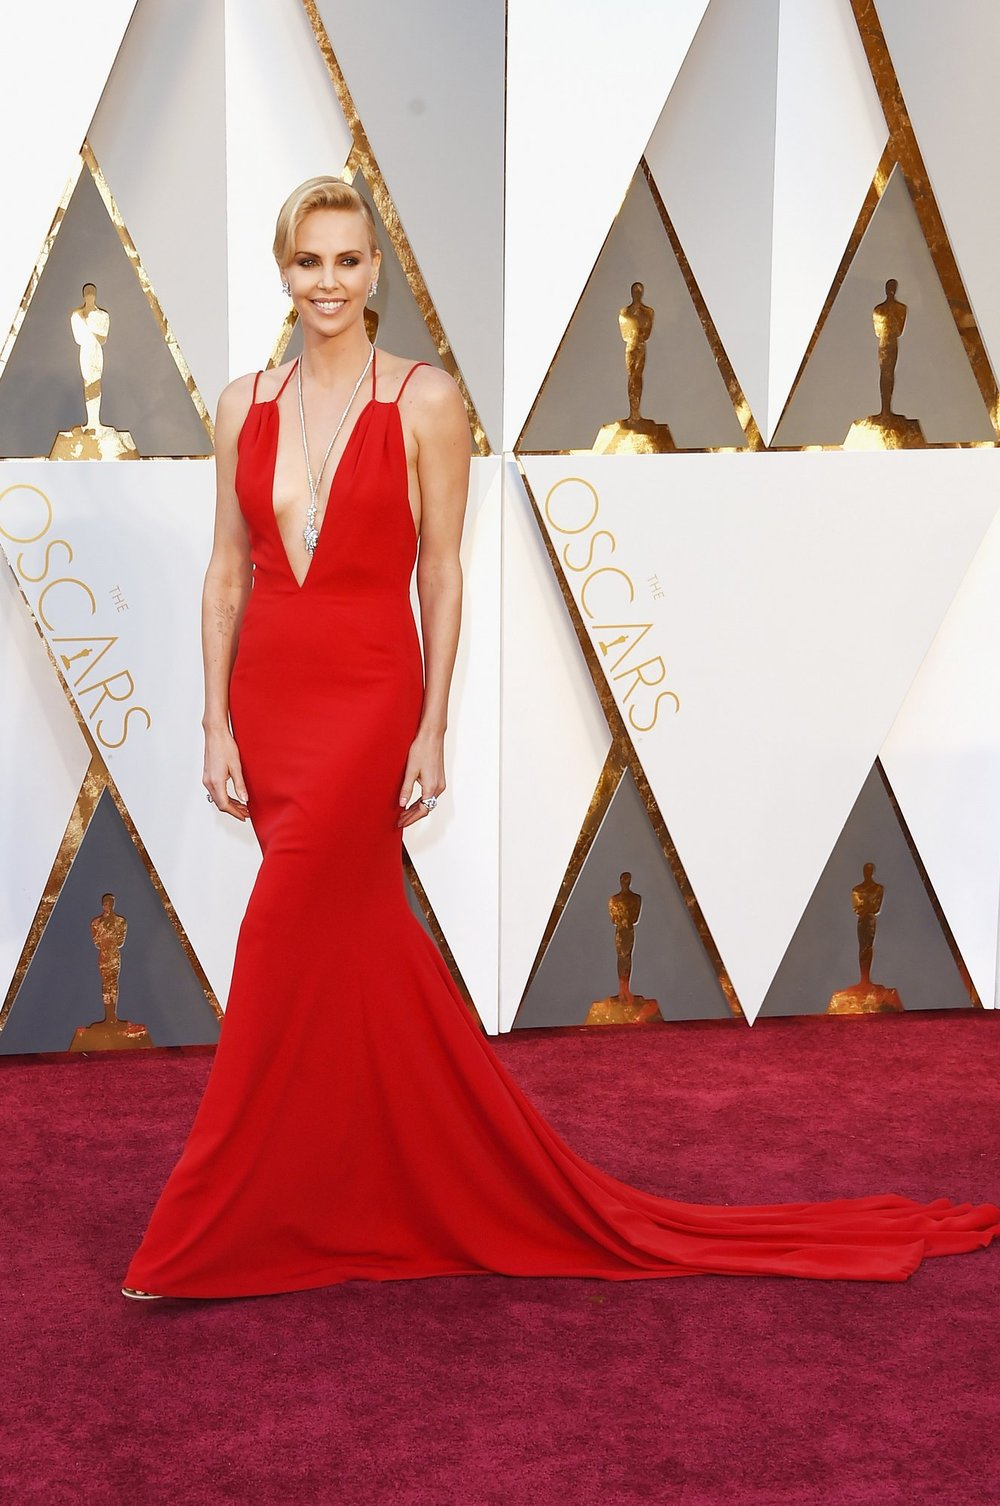 Charlize Theron can never go wrong. This lady in red dazzled us with graceful beaut ones again